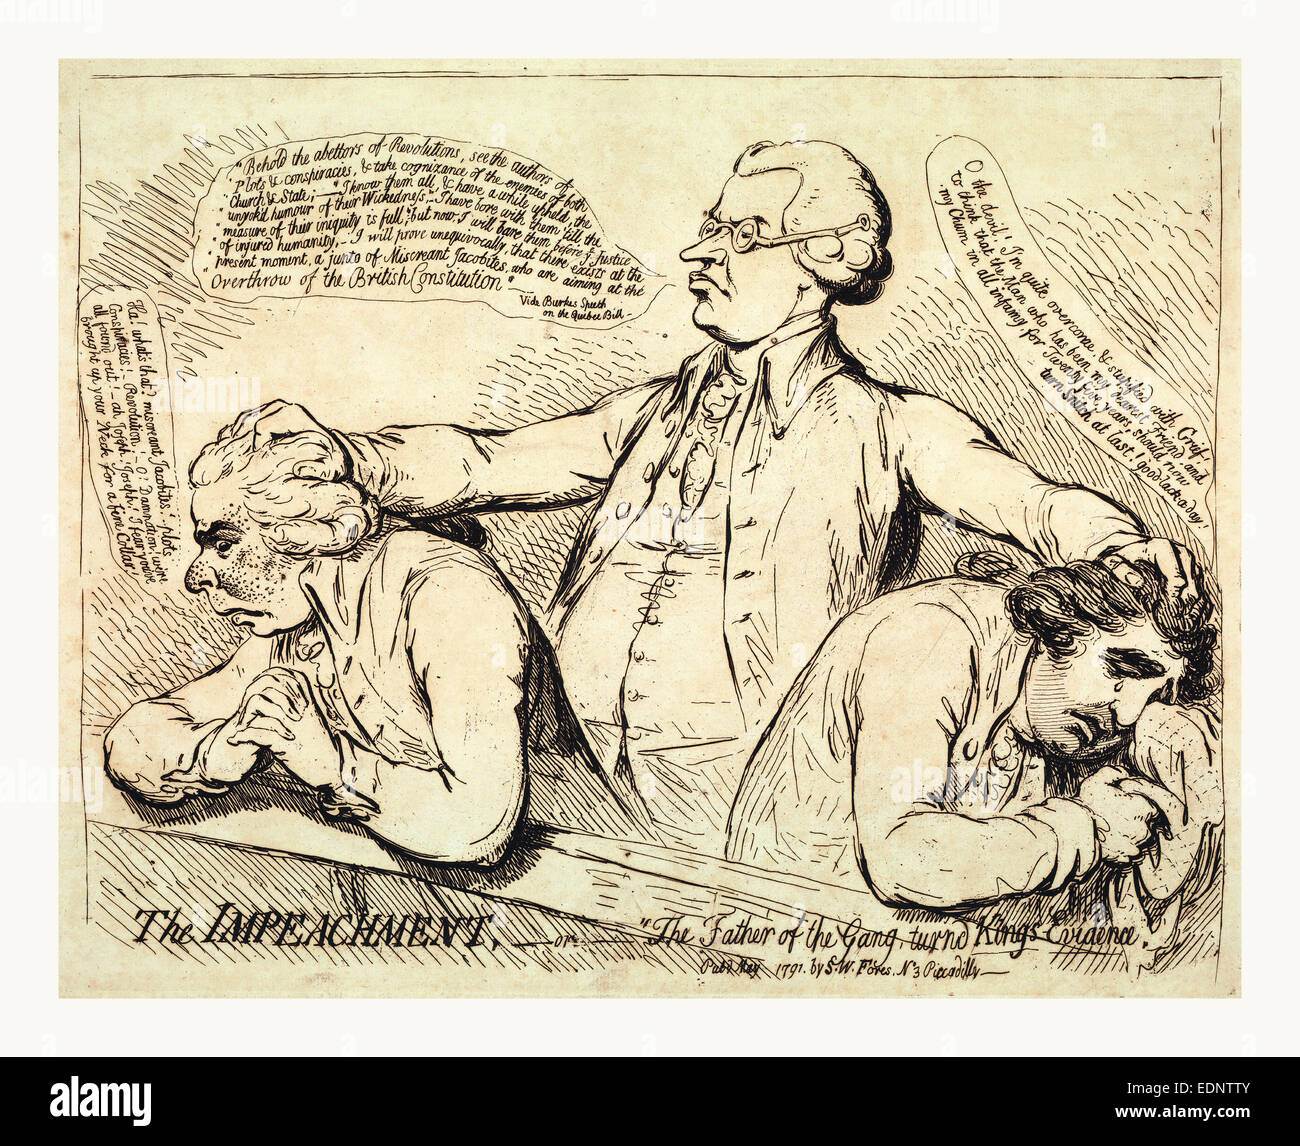 The impeachment, or The father of the gang turned Kings evidence, Gillray, James, 1756-1815, artist, engraving 1791 - Stock Image